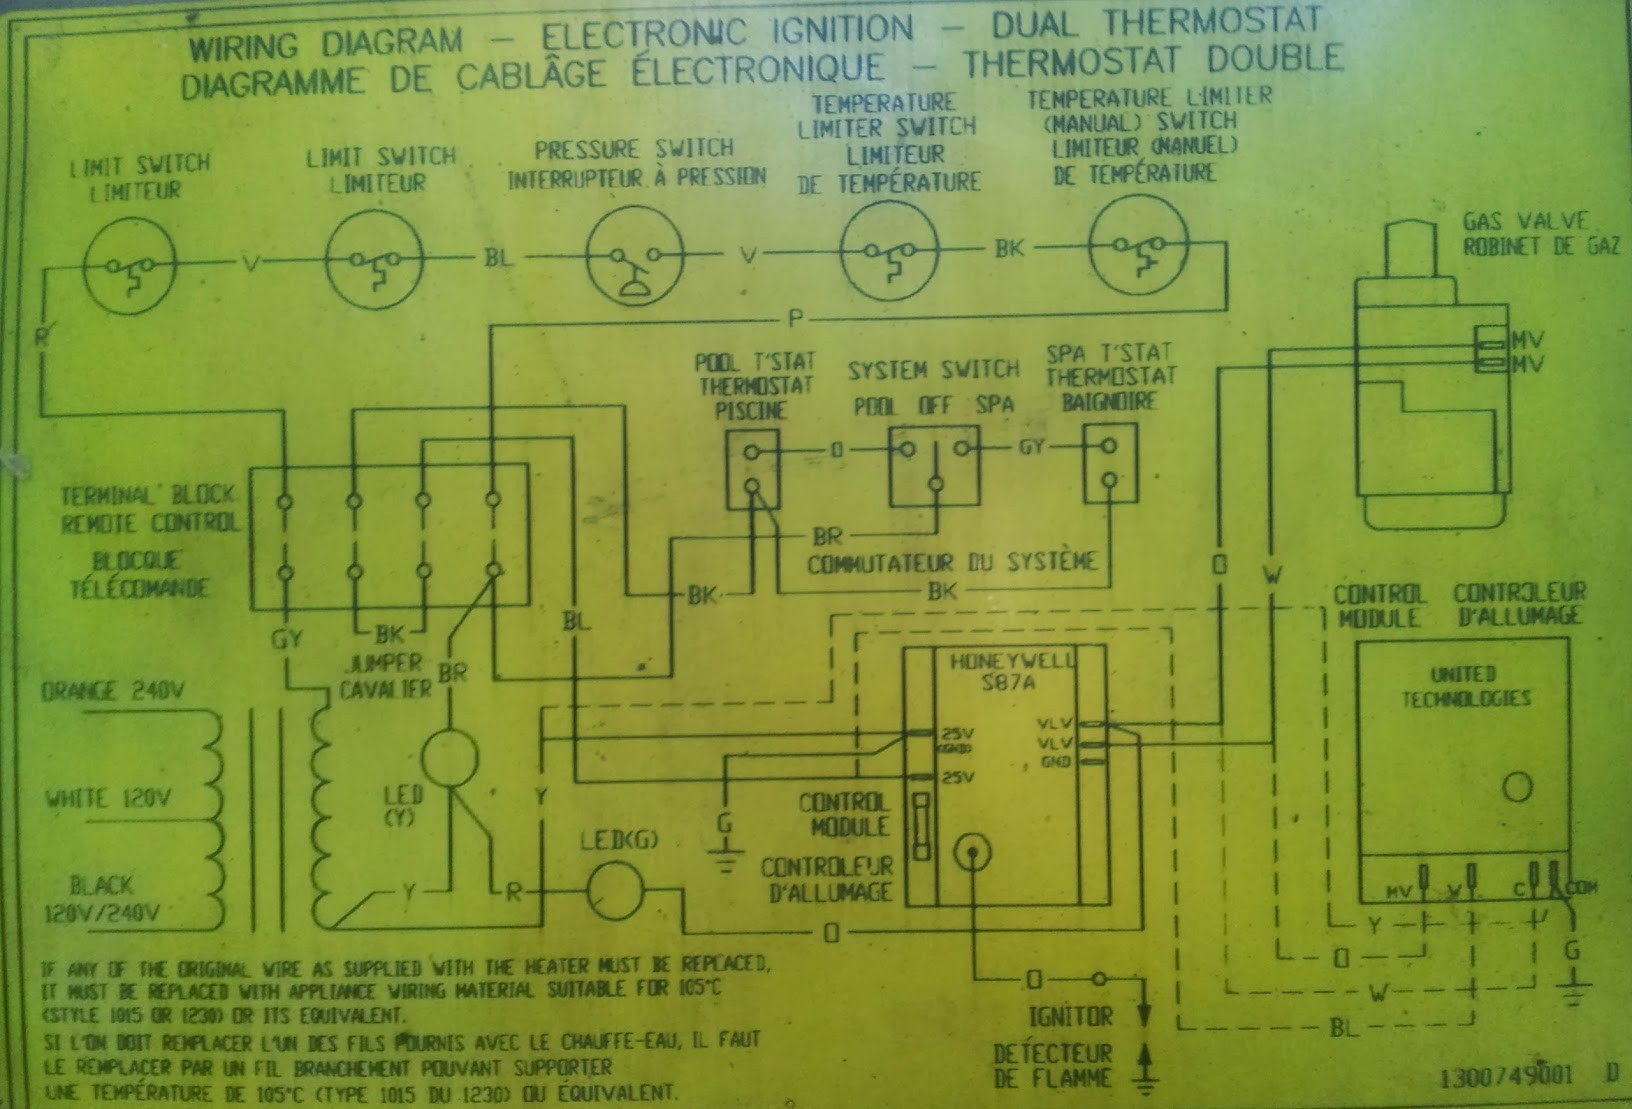 Wiring Diagram Gas Valve 36f22 Electrical Diagrams Natural Wall Heater With Thermostat The Best 2018 Millivolt